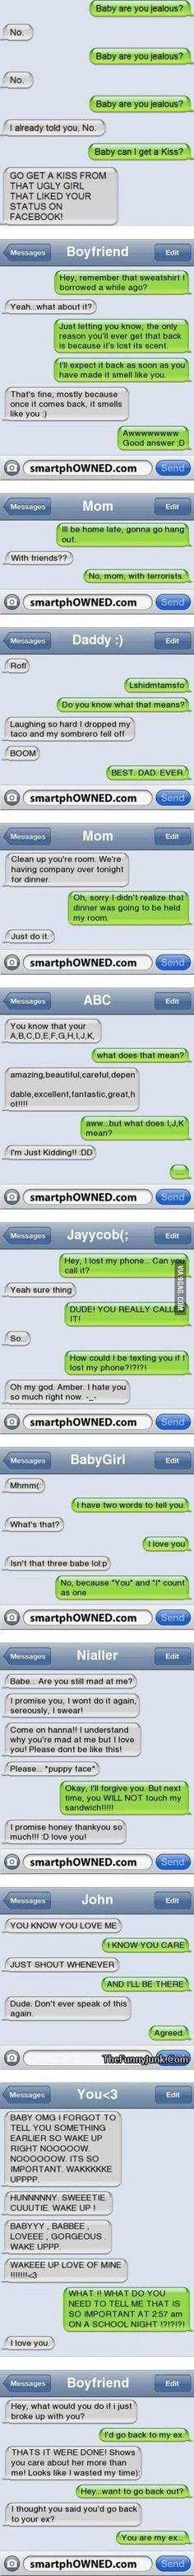 Check out to get some laughs from jokes sms, and funny texts messages. Funny text messages between couples, parents and kids Funny Shit, Funny Posts, Funny Humor, Funny Stuff, Humor Texts, Mom Funny, Funny Life, Haha, Lol Text